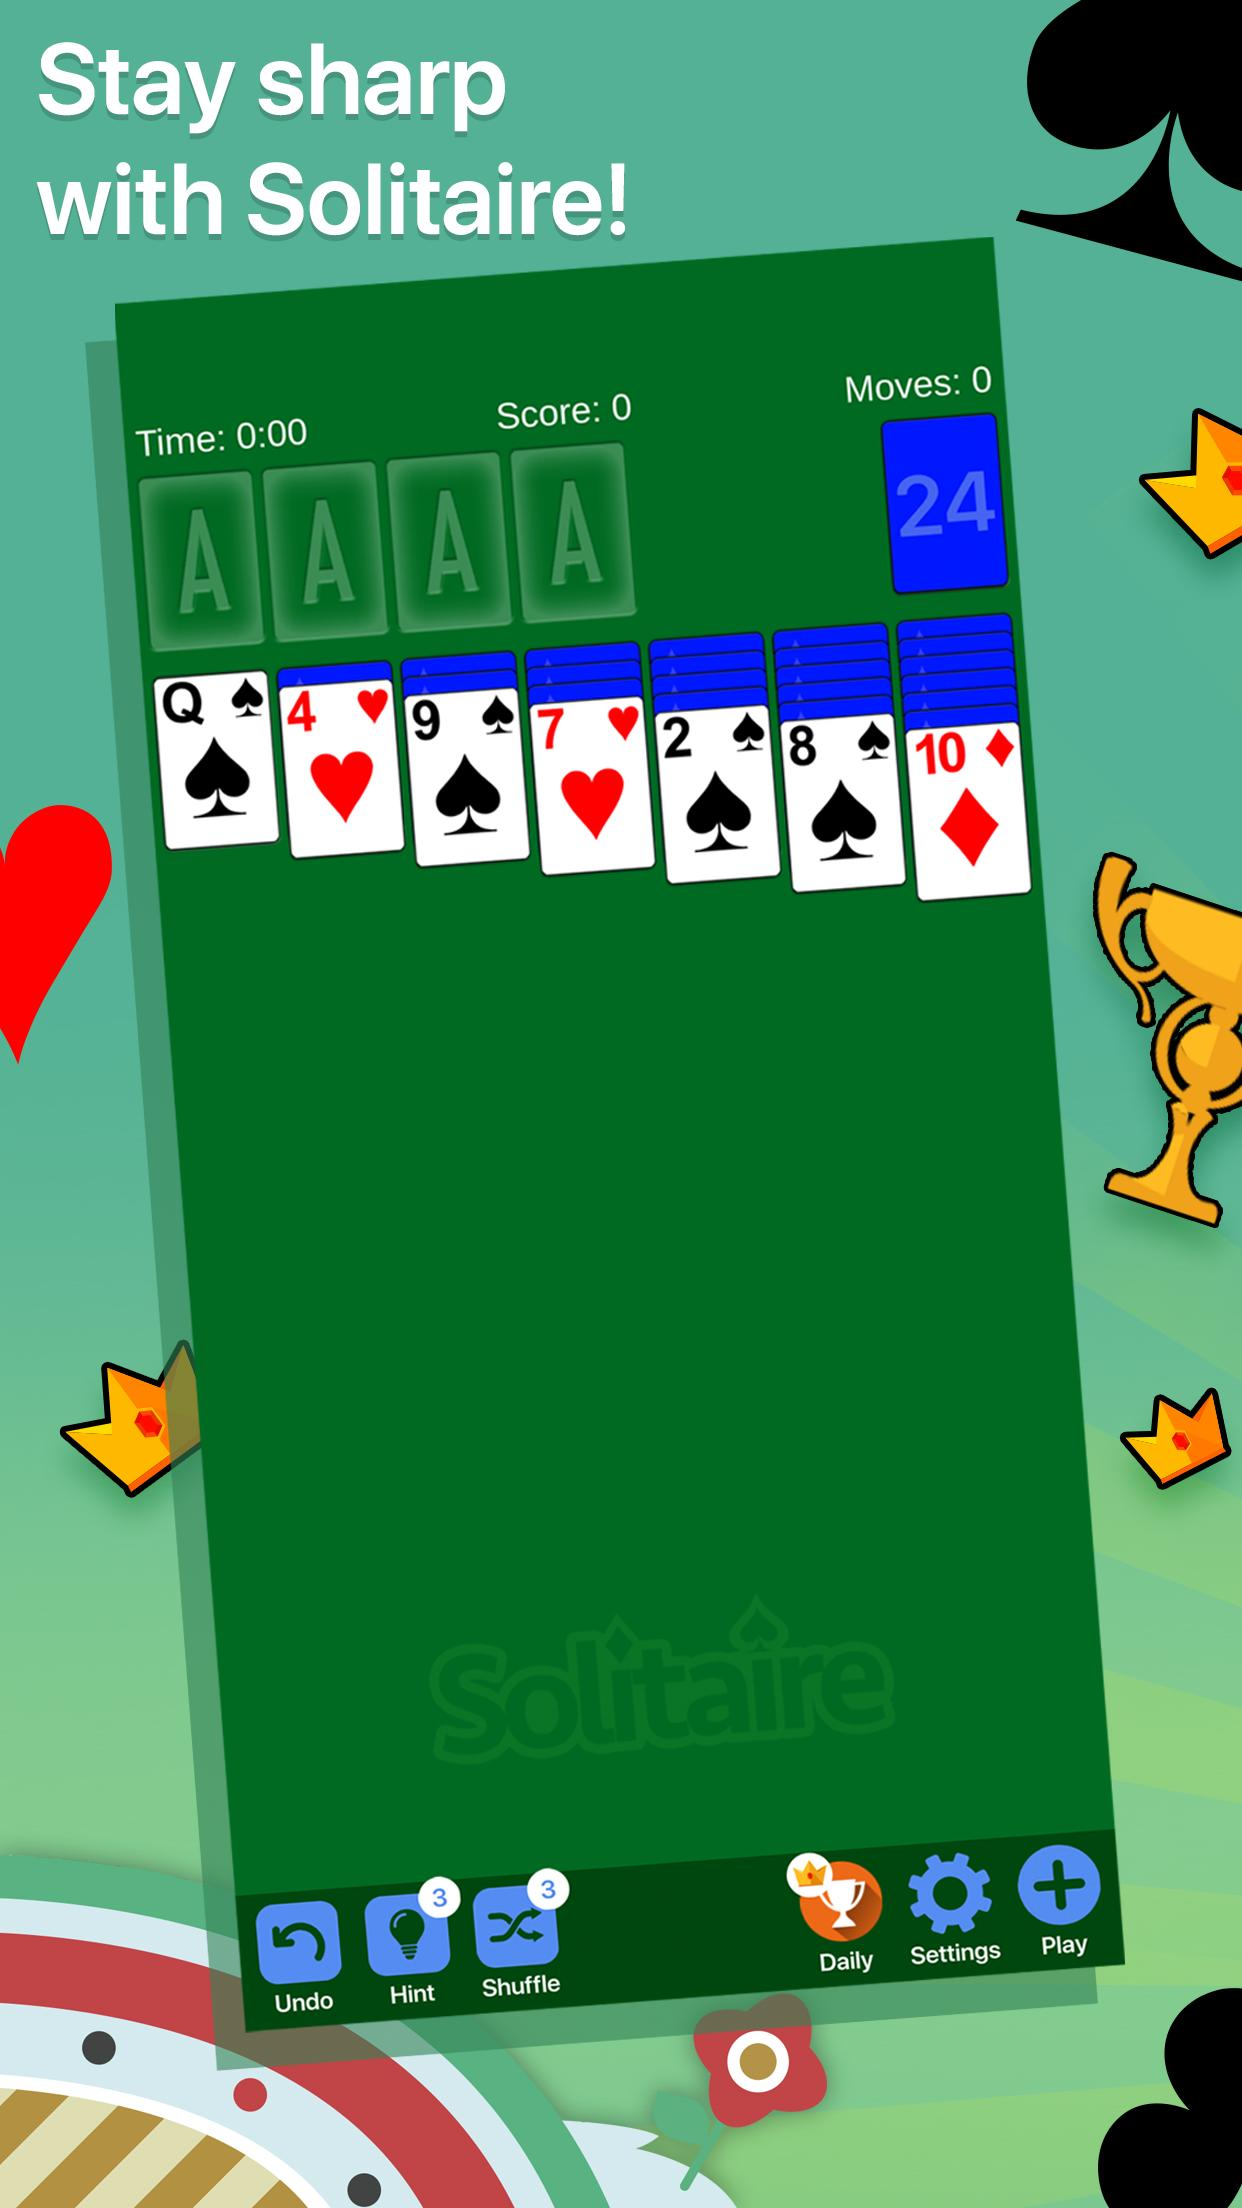 Solitaire 8.4.1 Screenshot 1